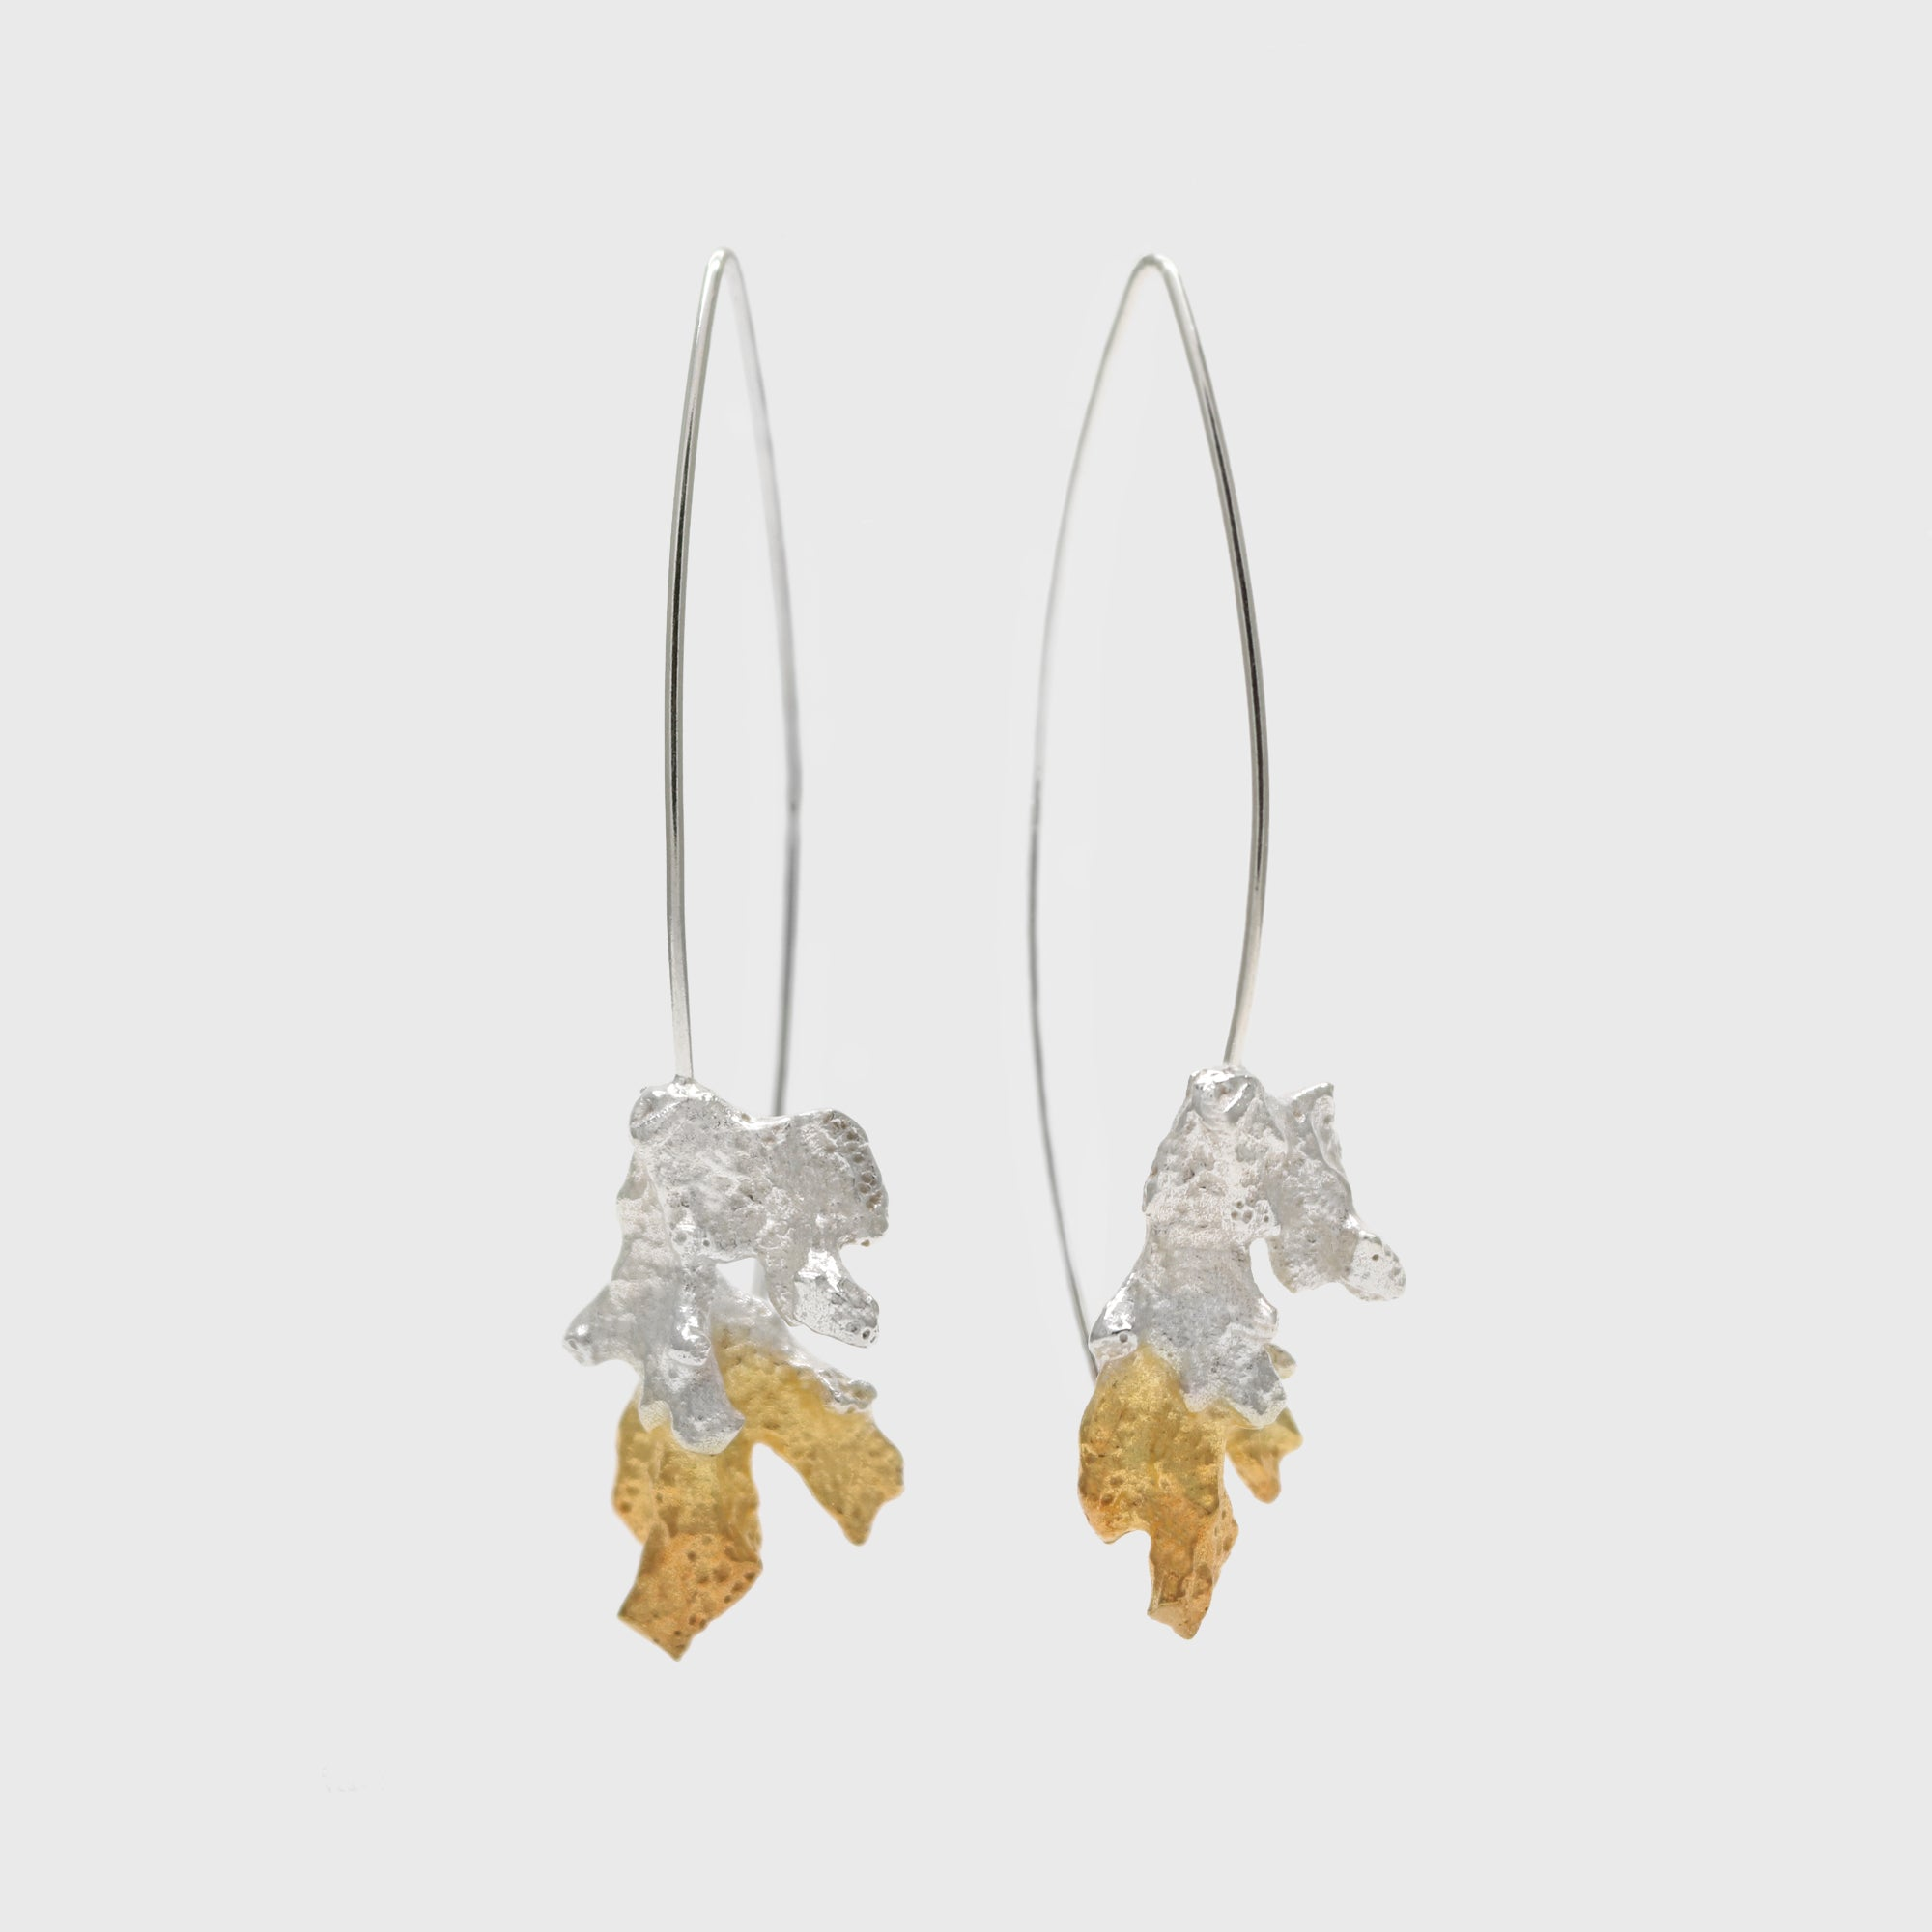 Coral Long Earrings – Paula Vieira Jewellery